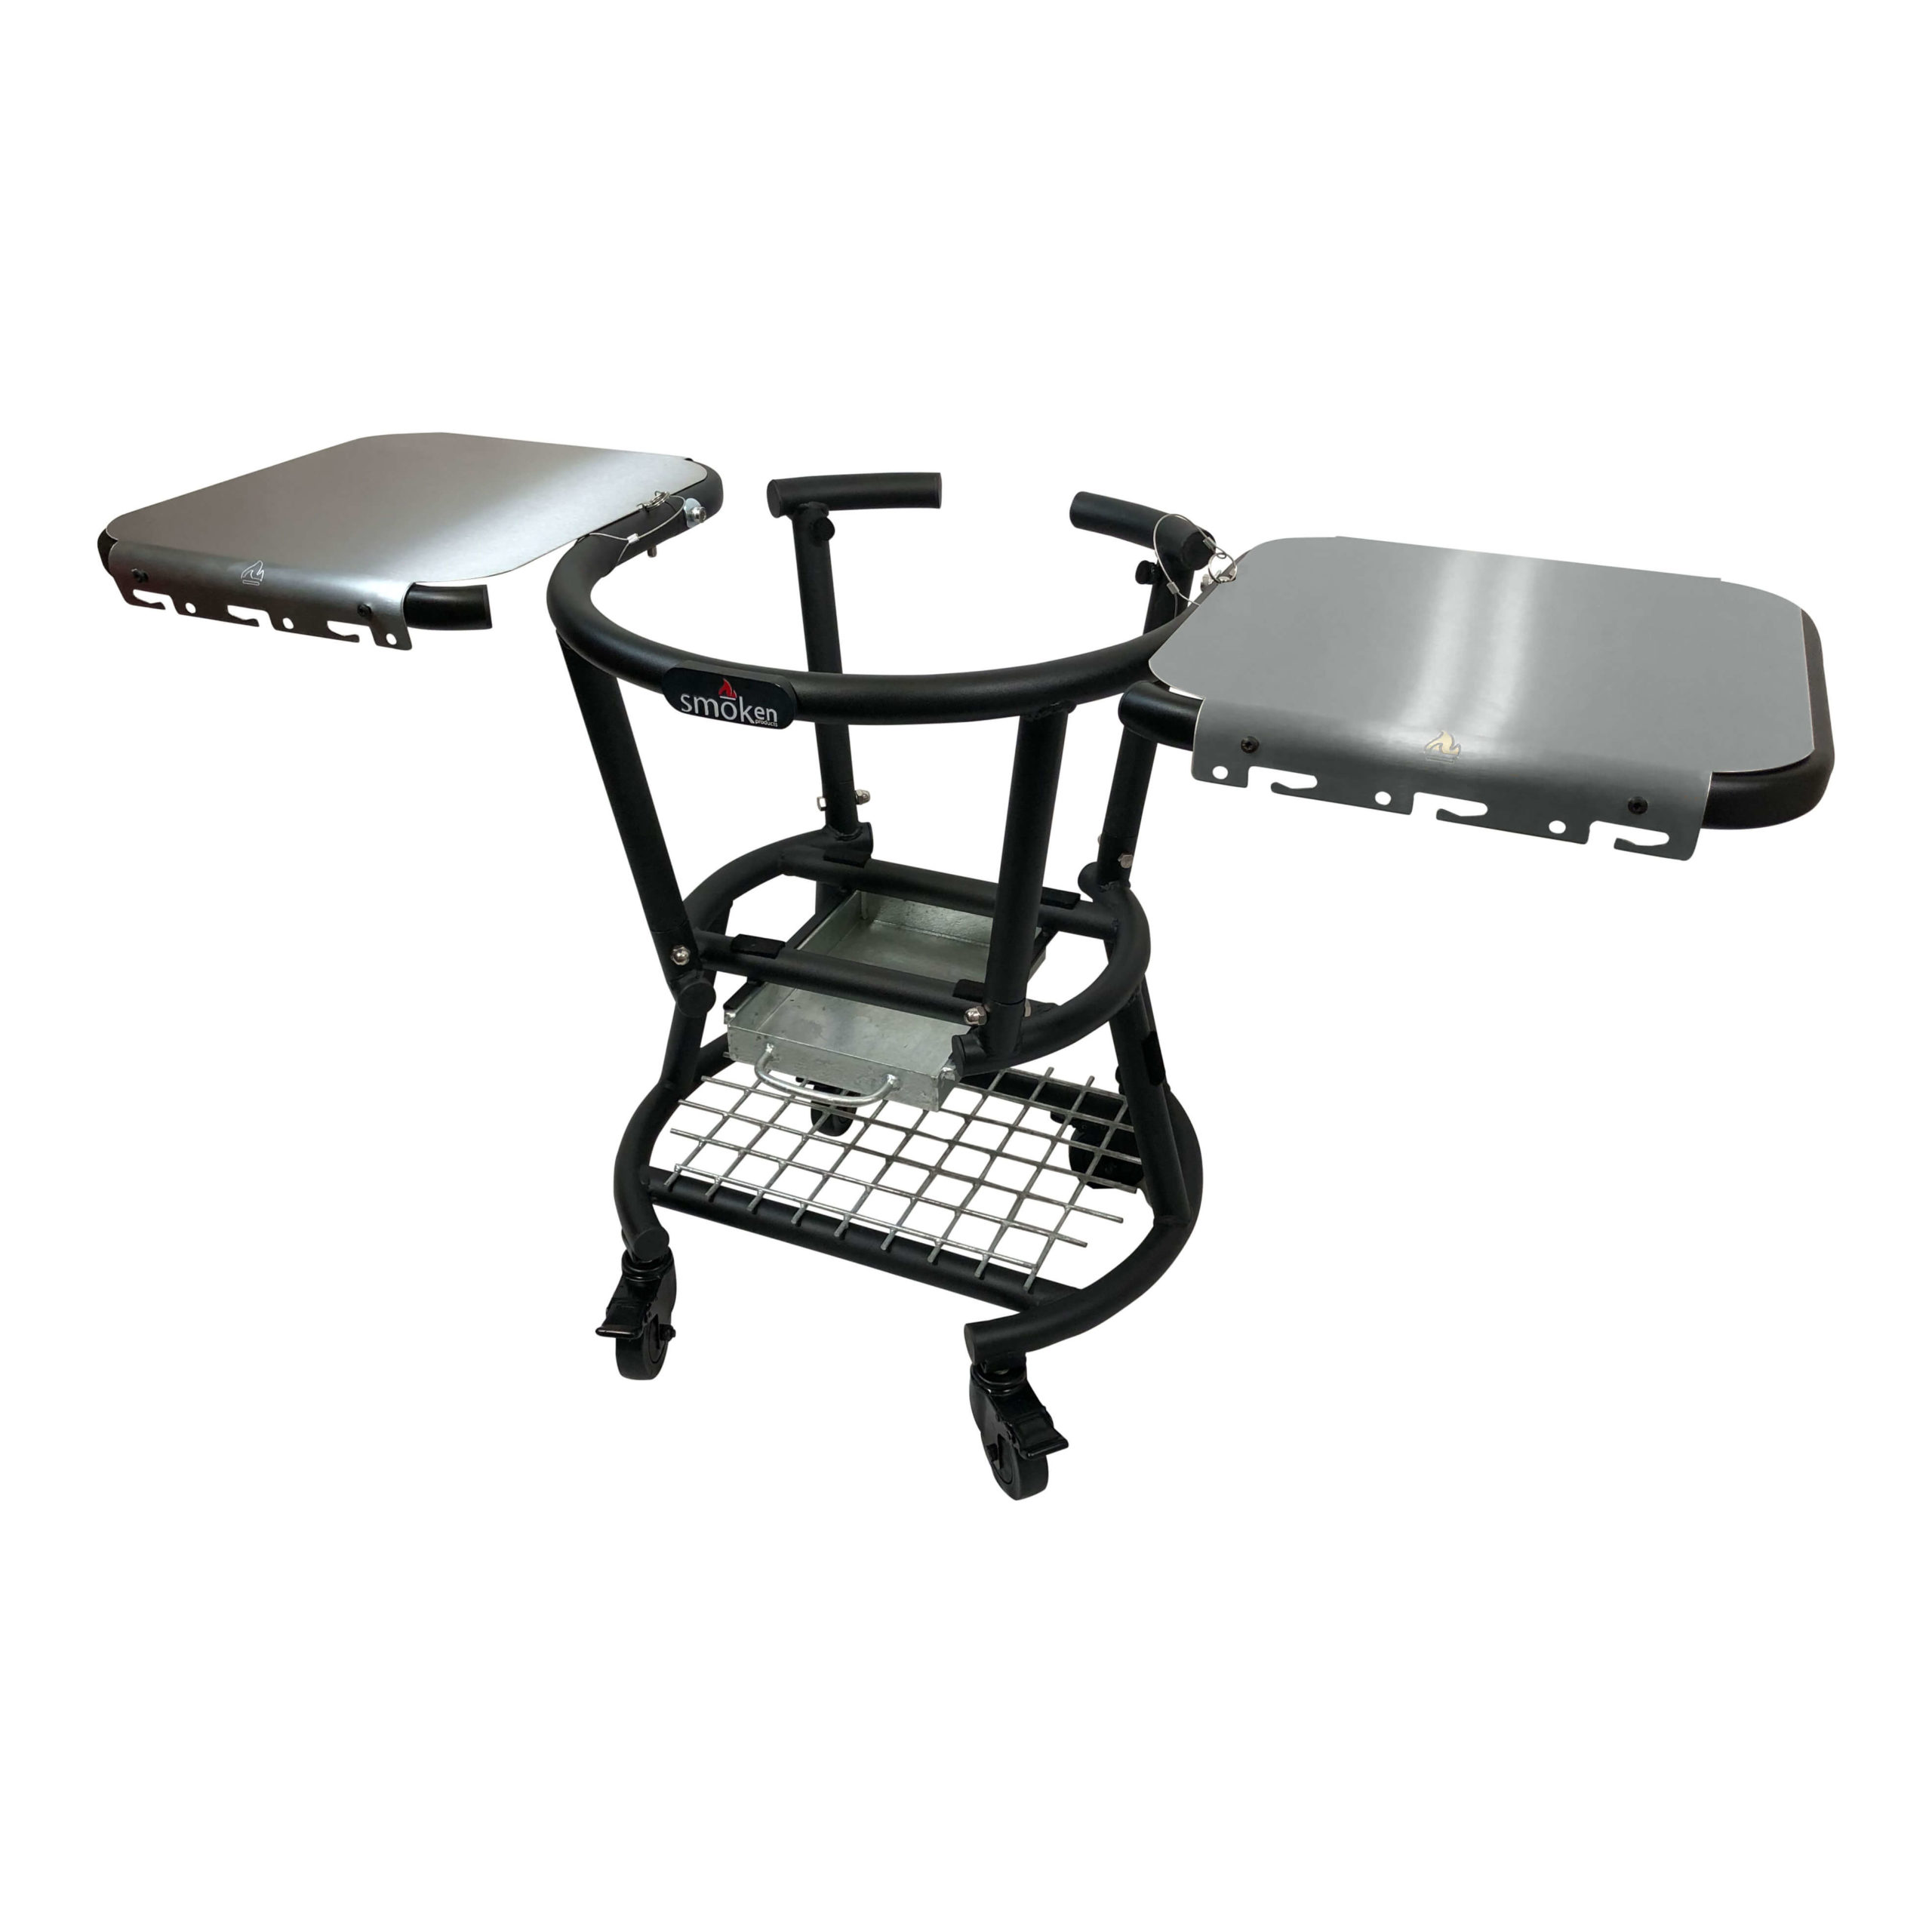 101537_L-Cuna-Angle_Tables-UP-001